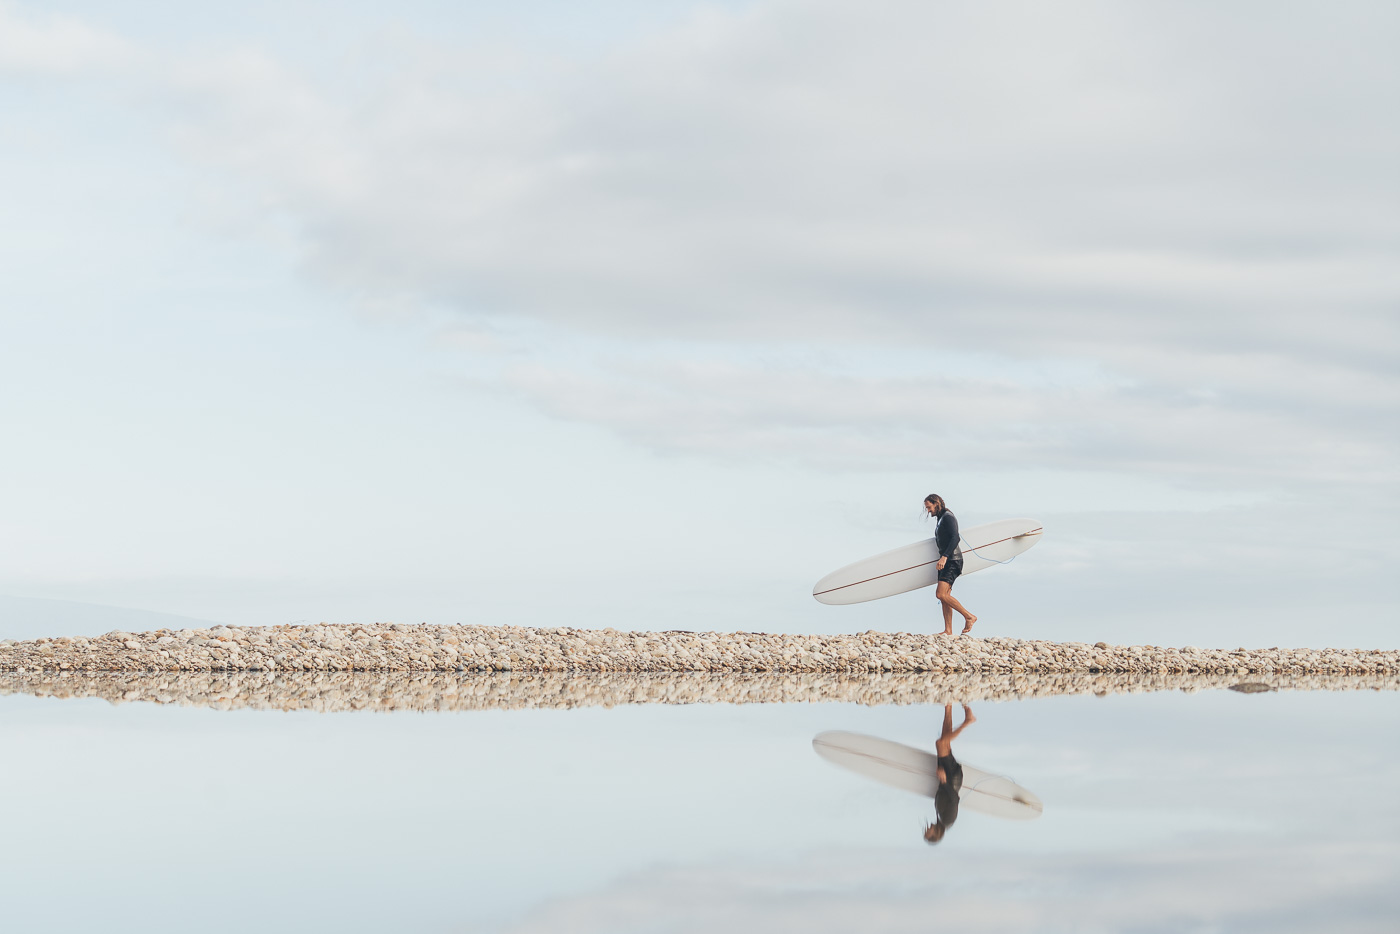 Reflection of Surfer carrying Surfboard to the beach in New Zealand